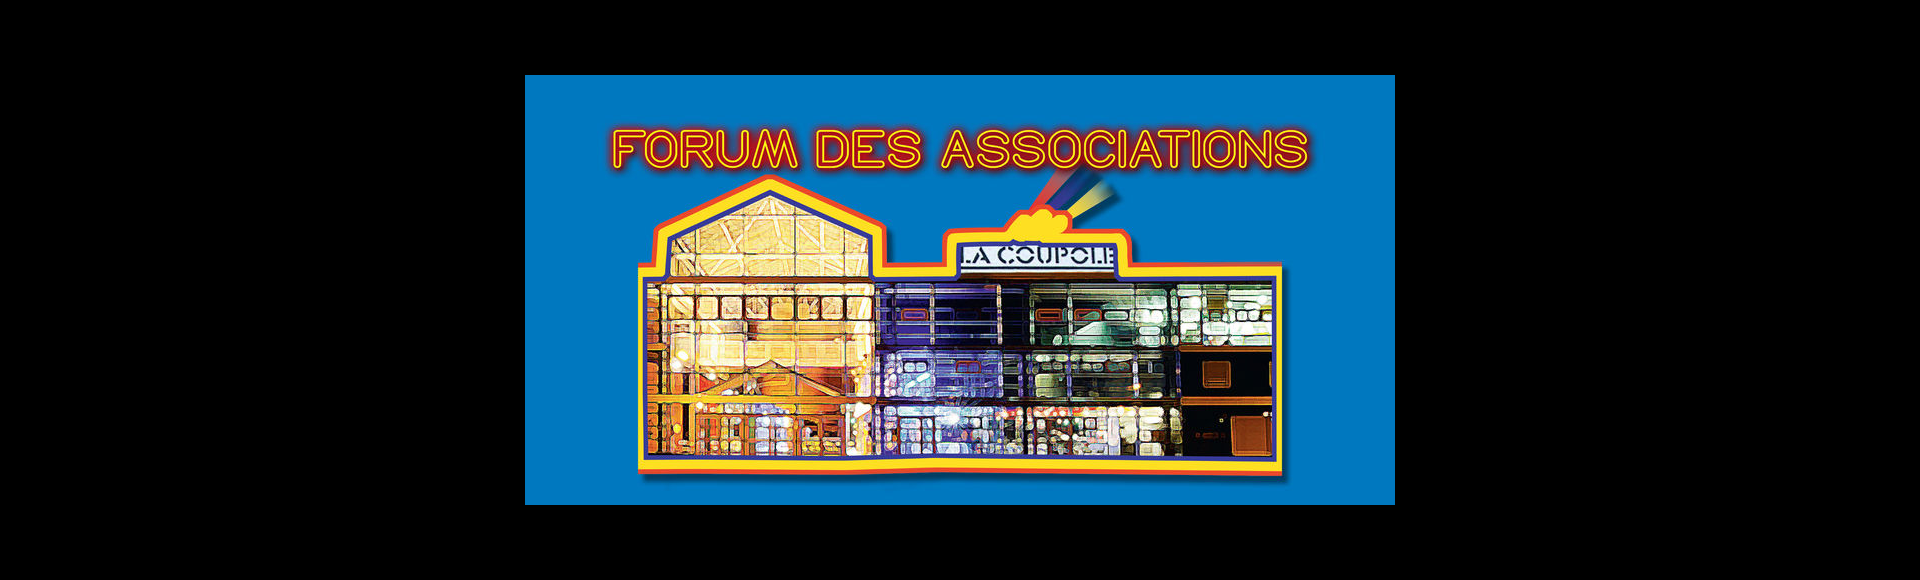 Forum des associations – Samedi 7 septembre 2019